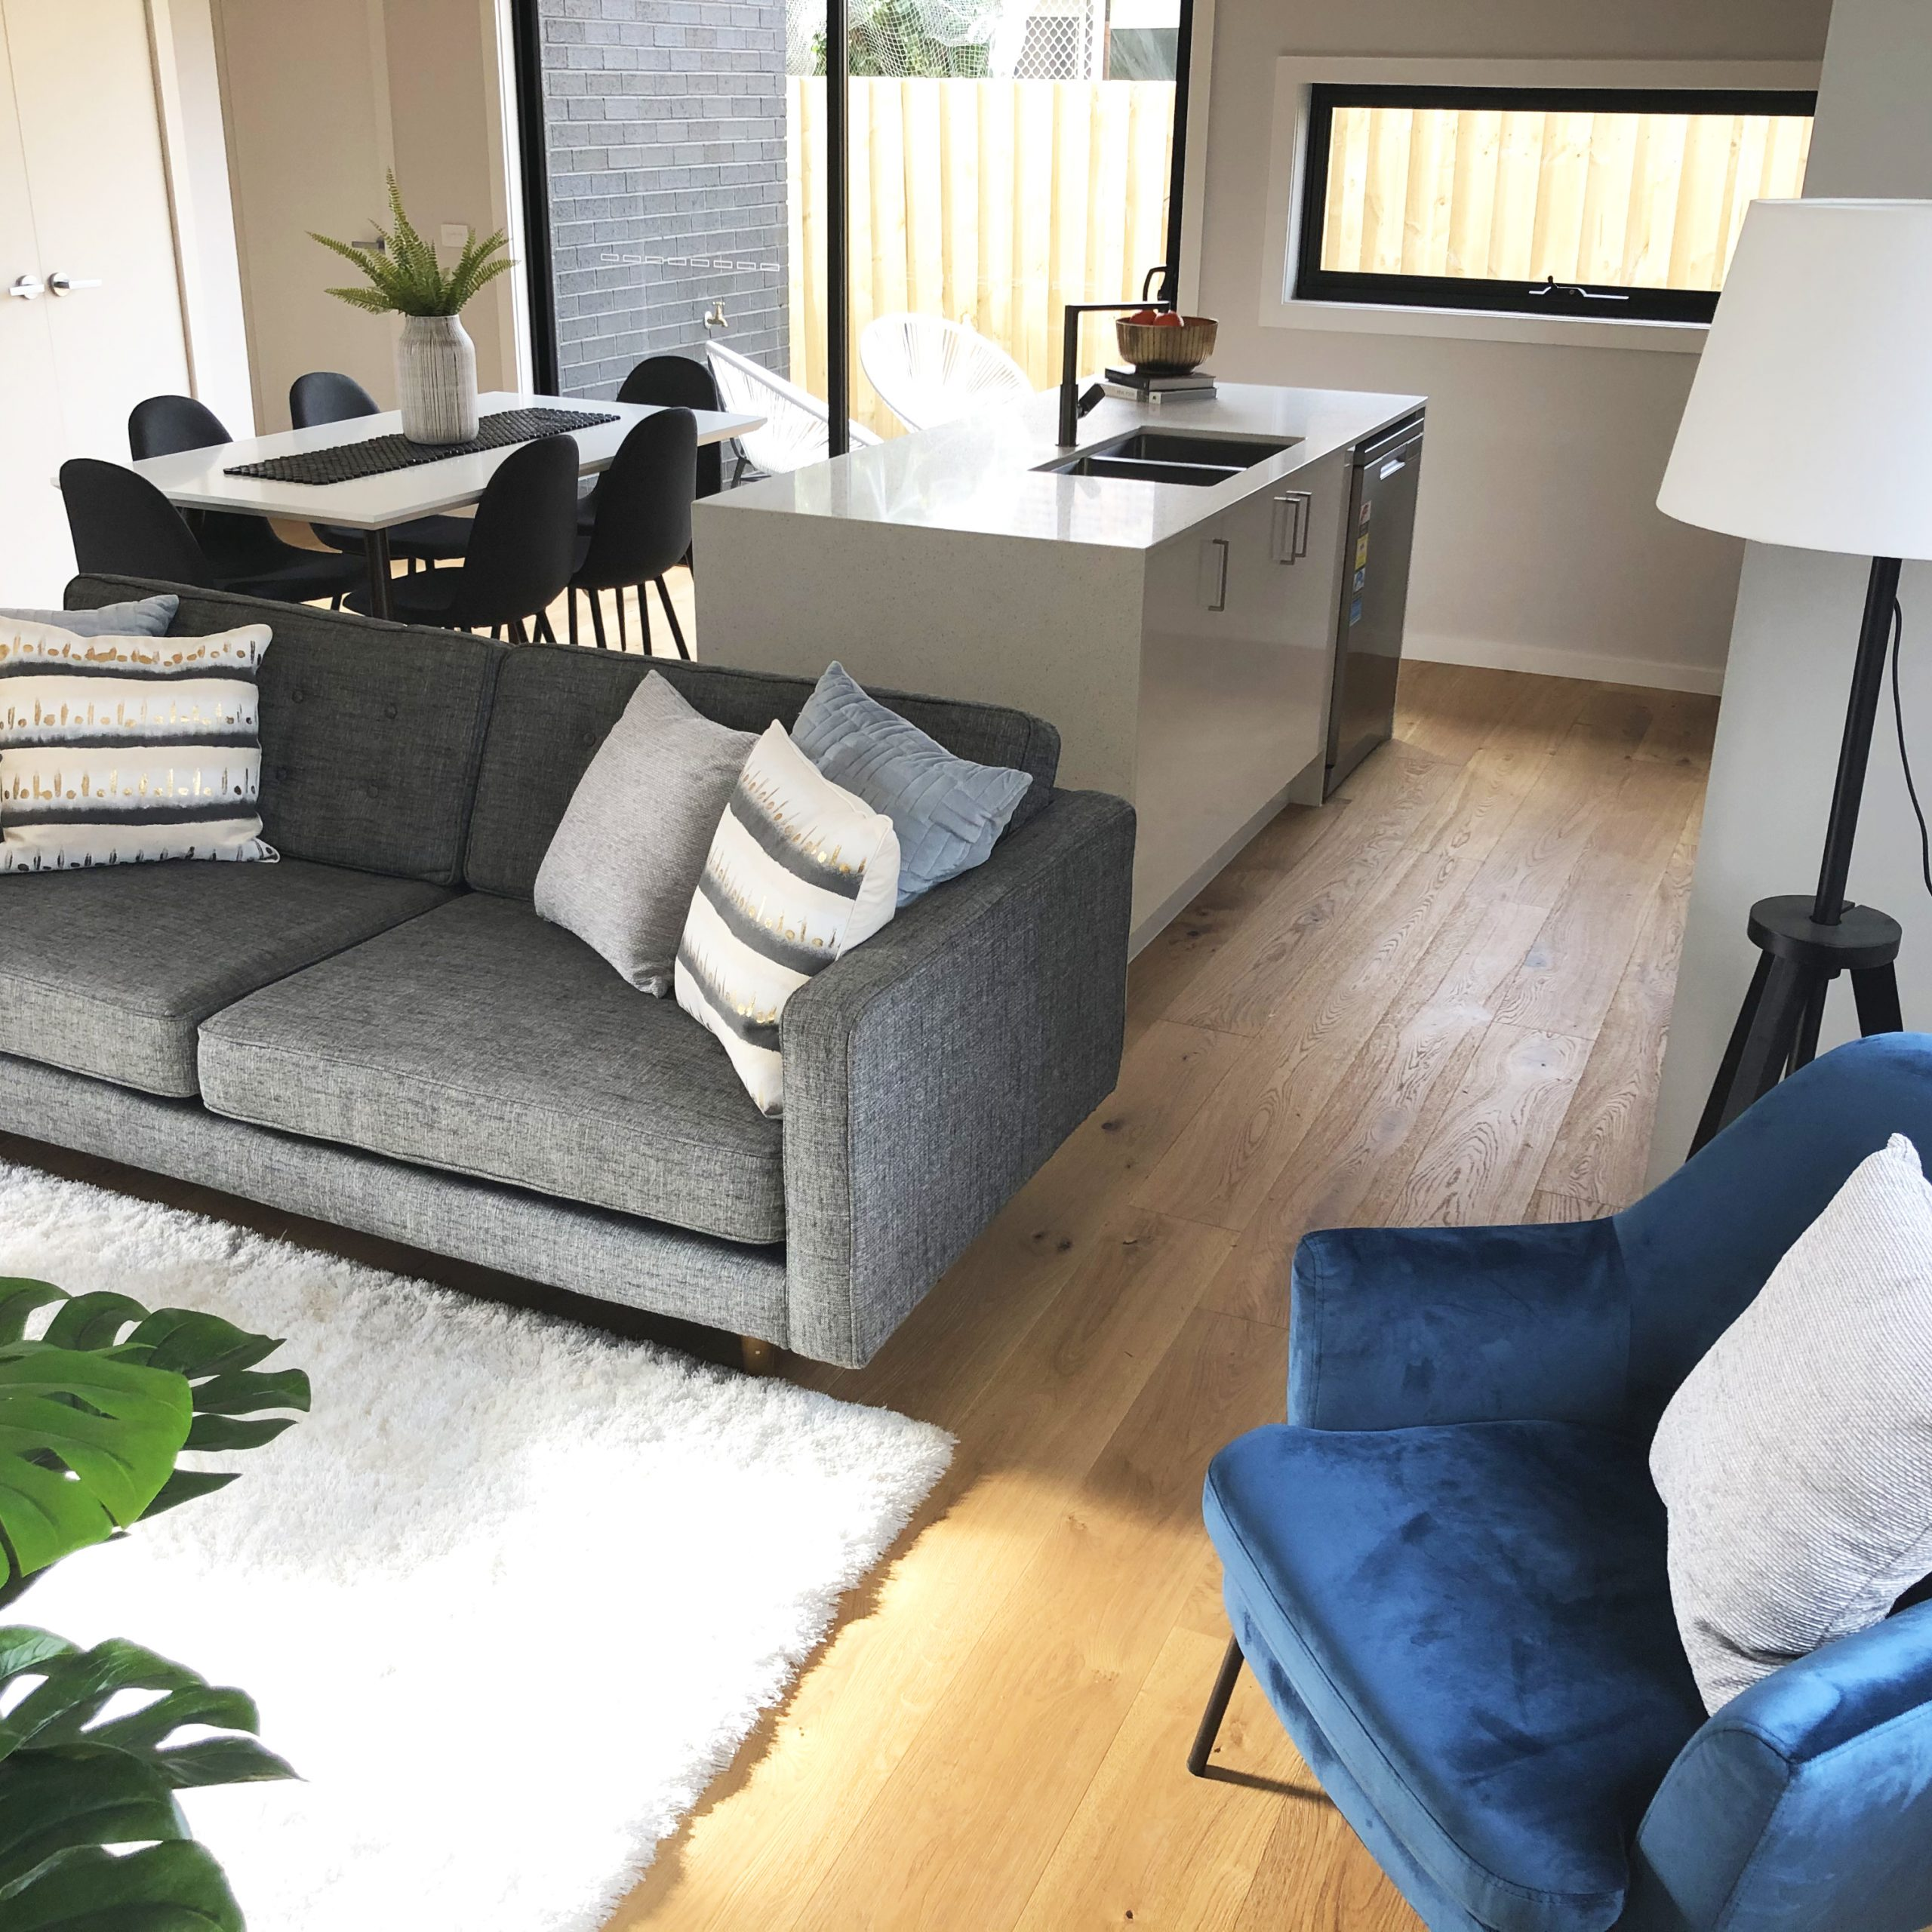 Styled living room with blue accents - Melbourne Property Styling - Leeder Interiors